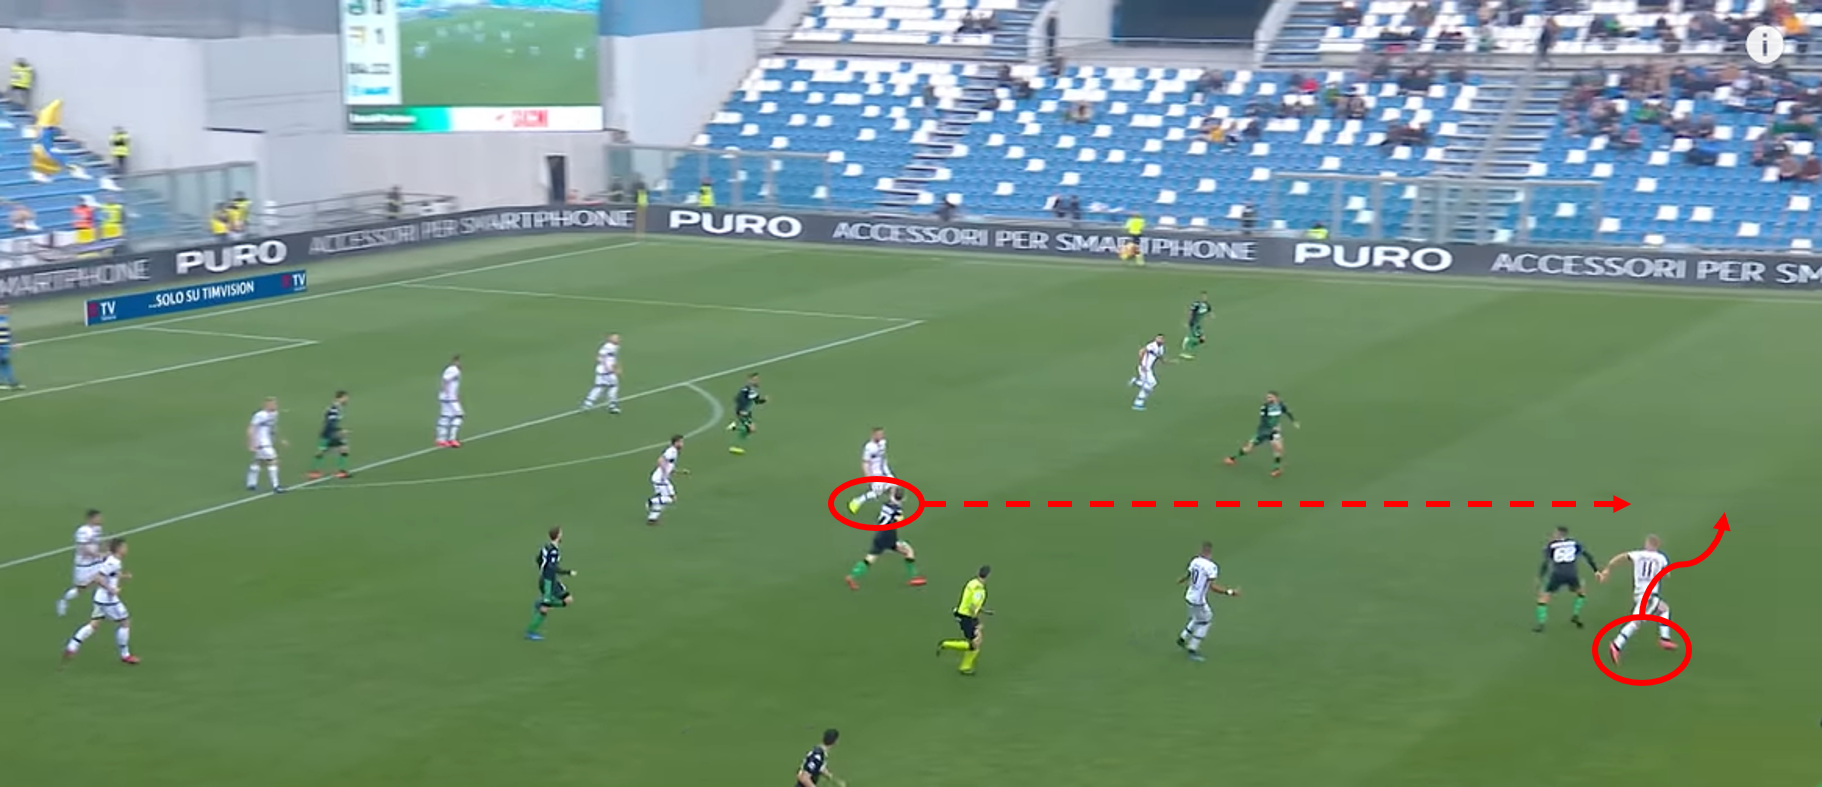 Serie A 2019/20: Sassuolo vs Parma – tactical analysis tactics